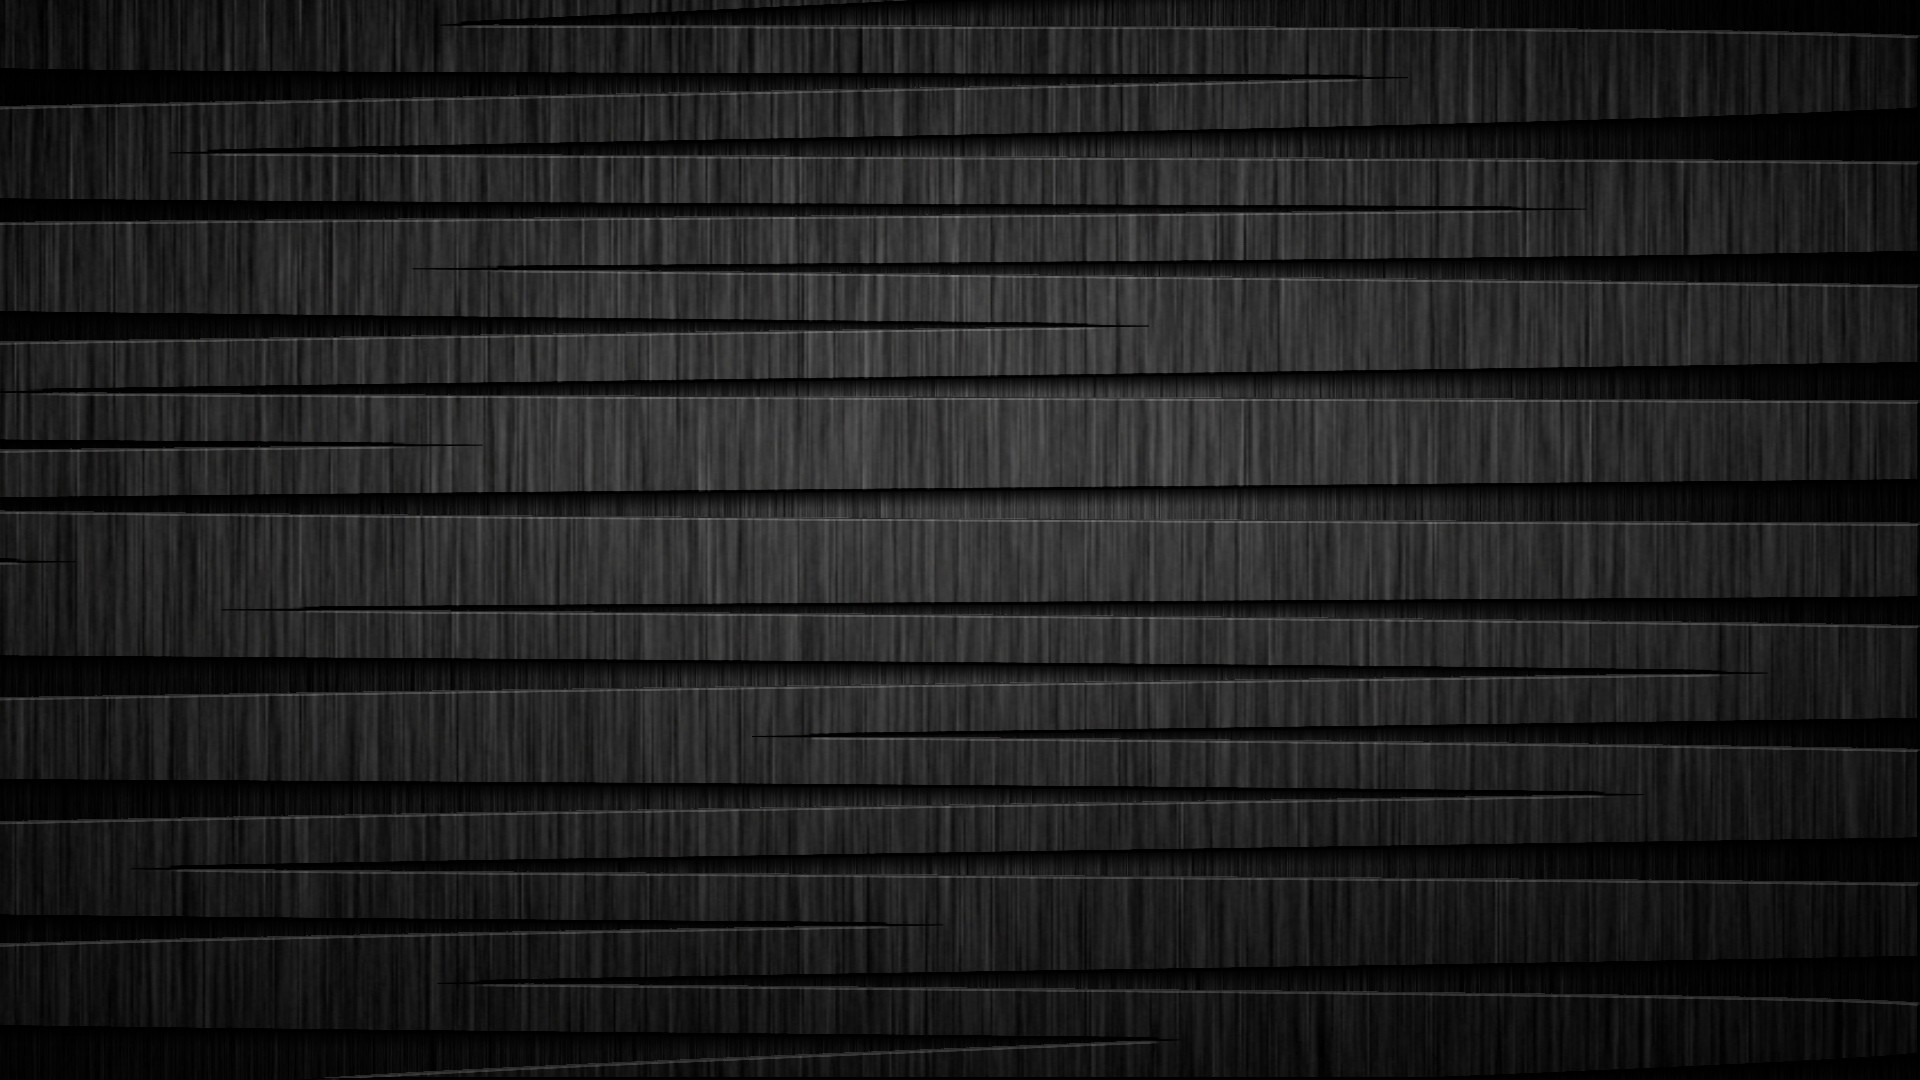 Http Hdwallsource Com Black Abstract 27629 Html